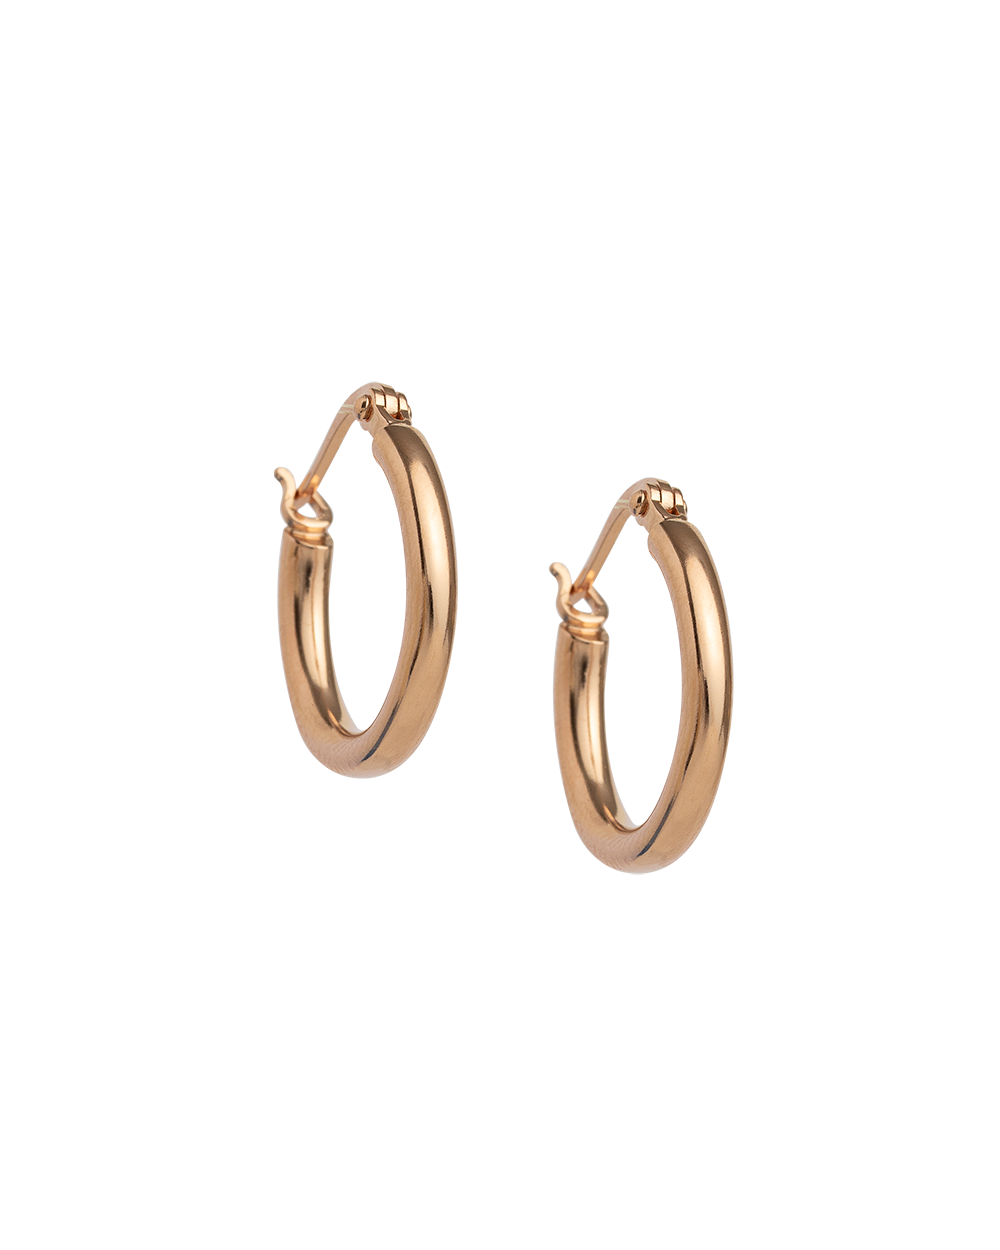 TIDAL HOOPS SMALL (18K-ROSE GOLD-PLATED)